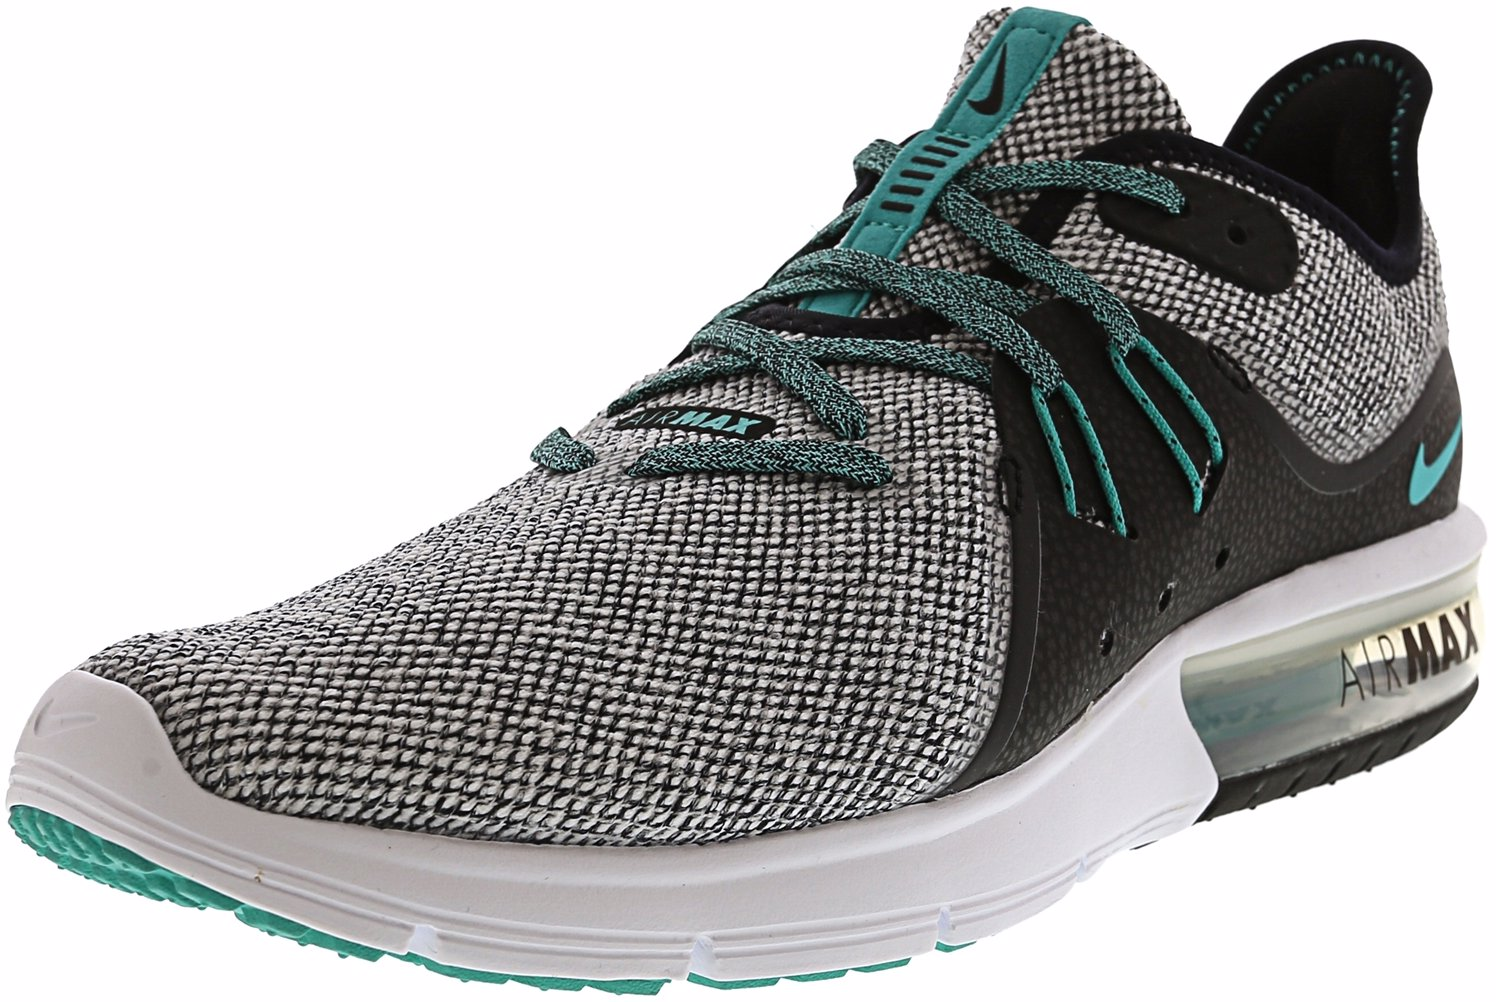 bcdabc7eacd This product is not available. Preview with Zoom. Loading... Nike. Men s  Air Max Sequent 3 White Hyper Jade - Black Ankle-High Running Shoe